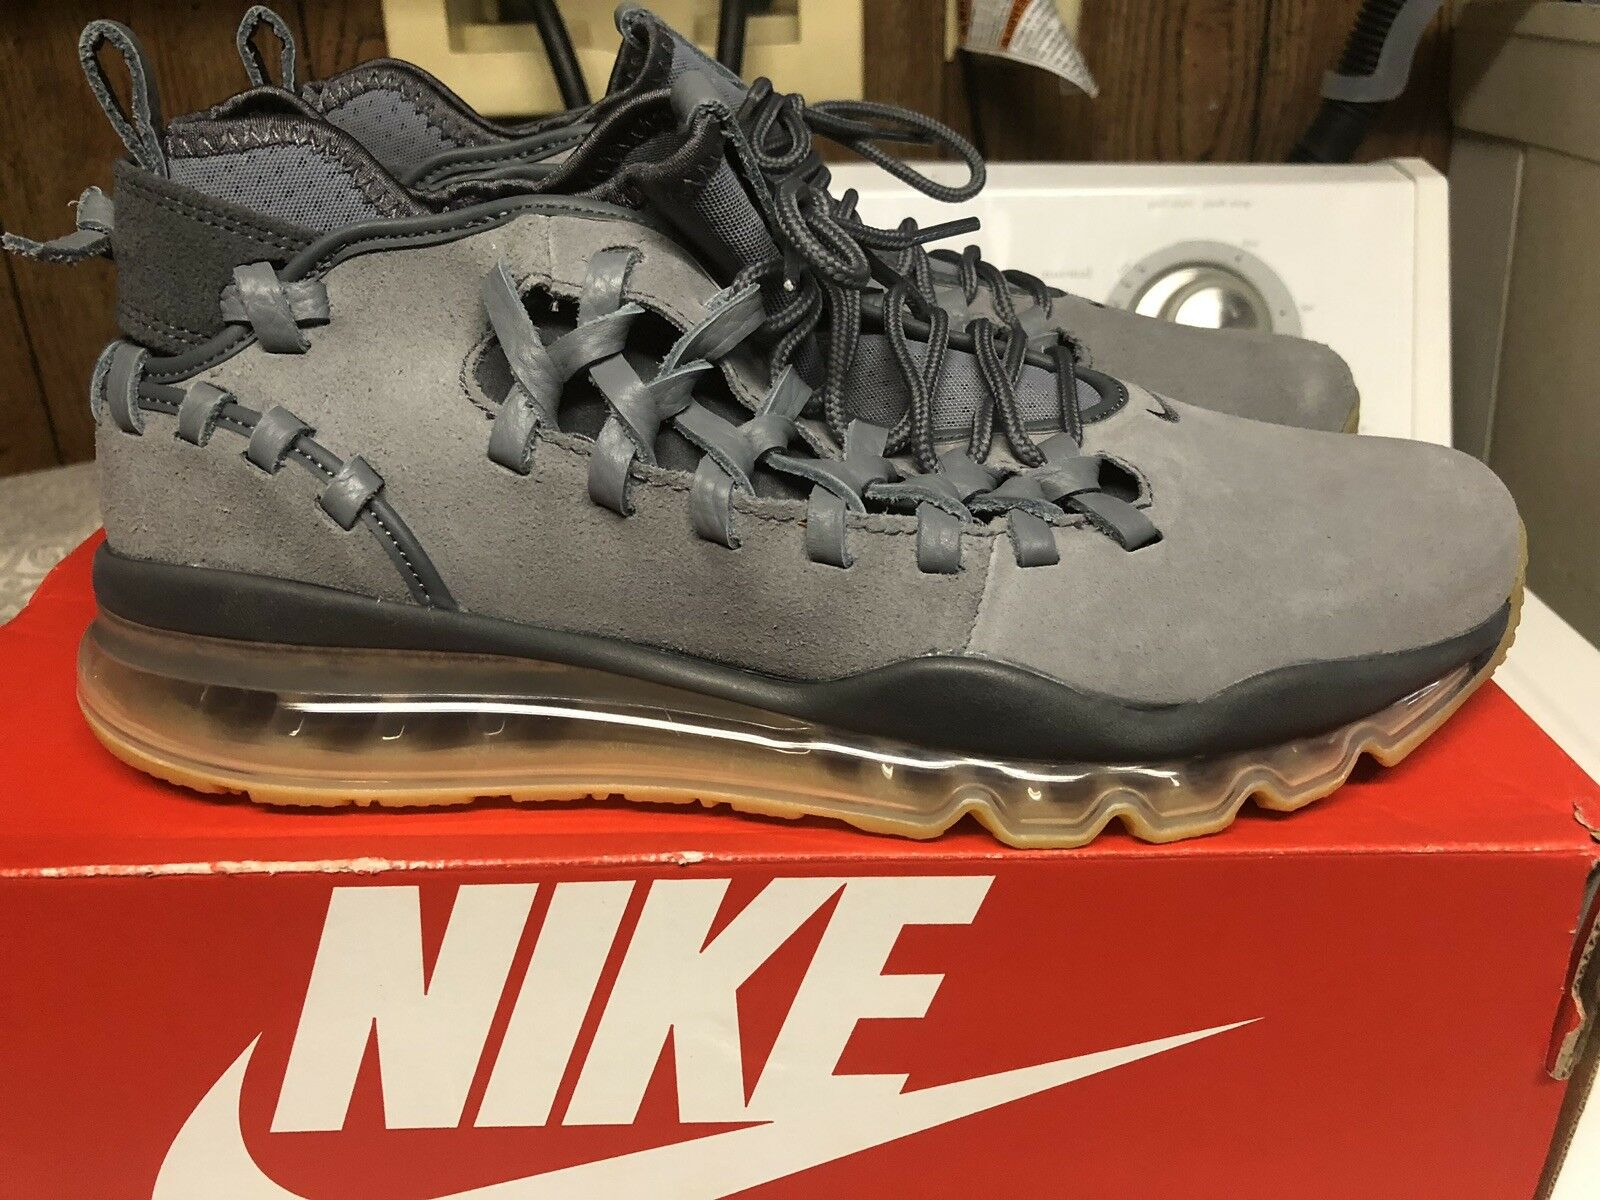 Nike Air Max TR17 Running Mens Size 10 shoes Cool Dark Grey Gum